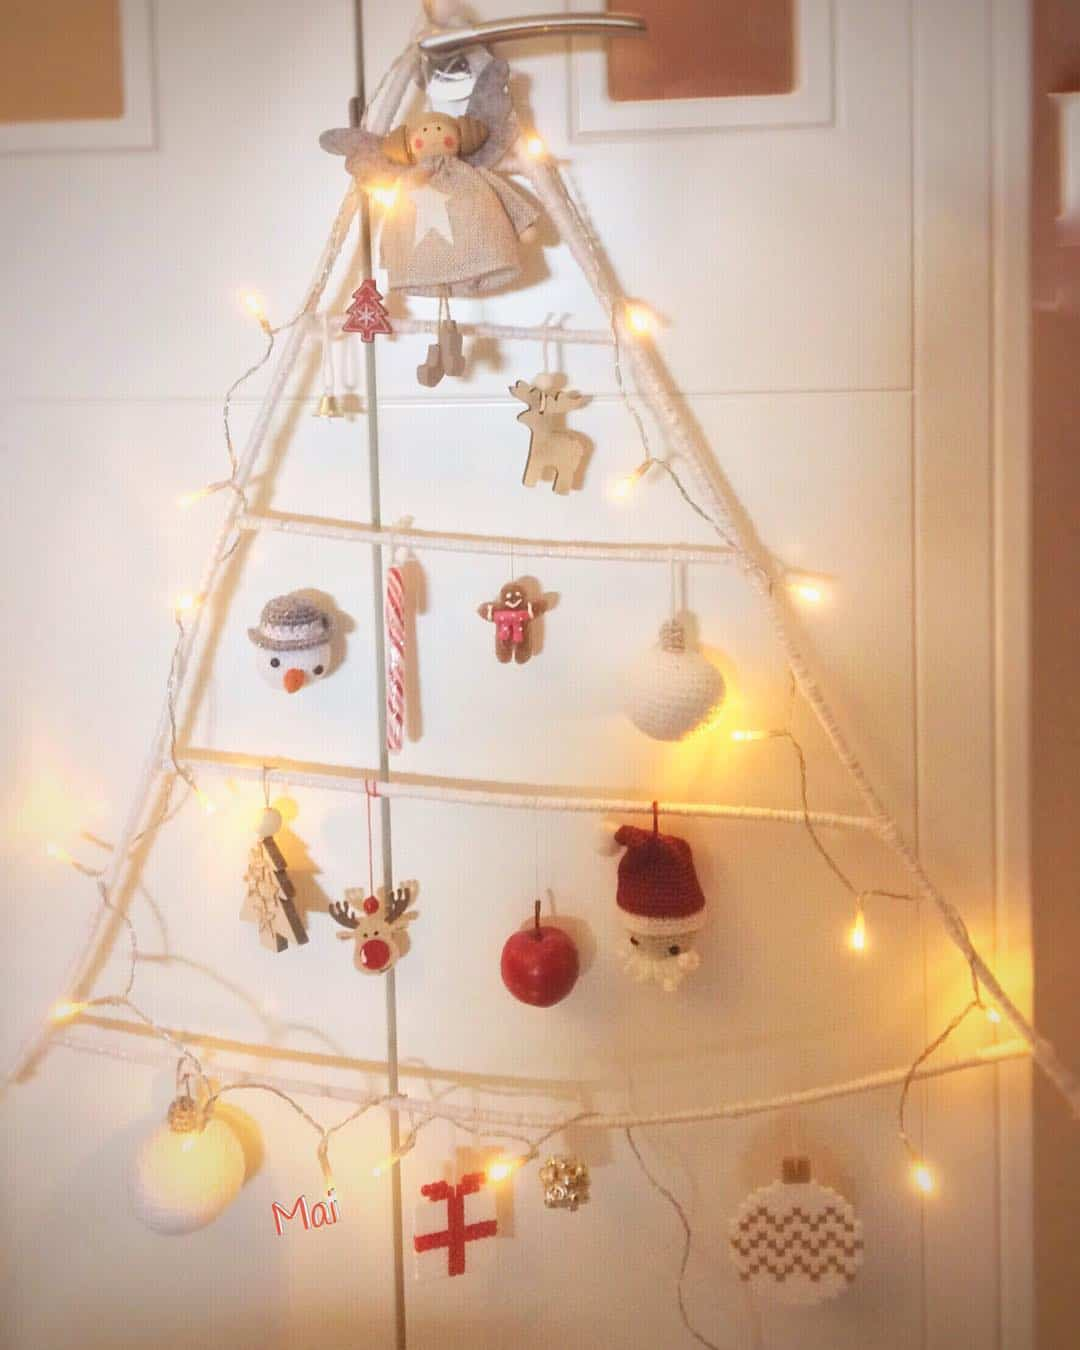 title | Diy Christmas Decorations 2020